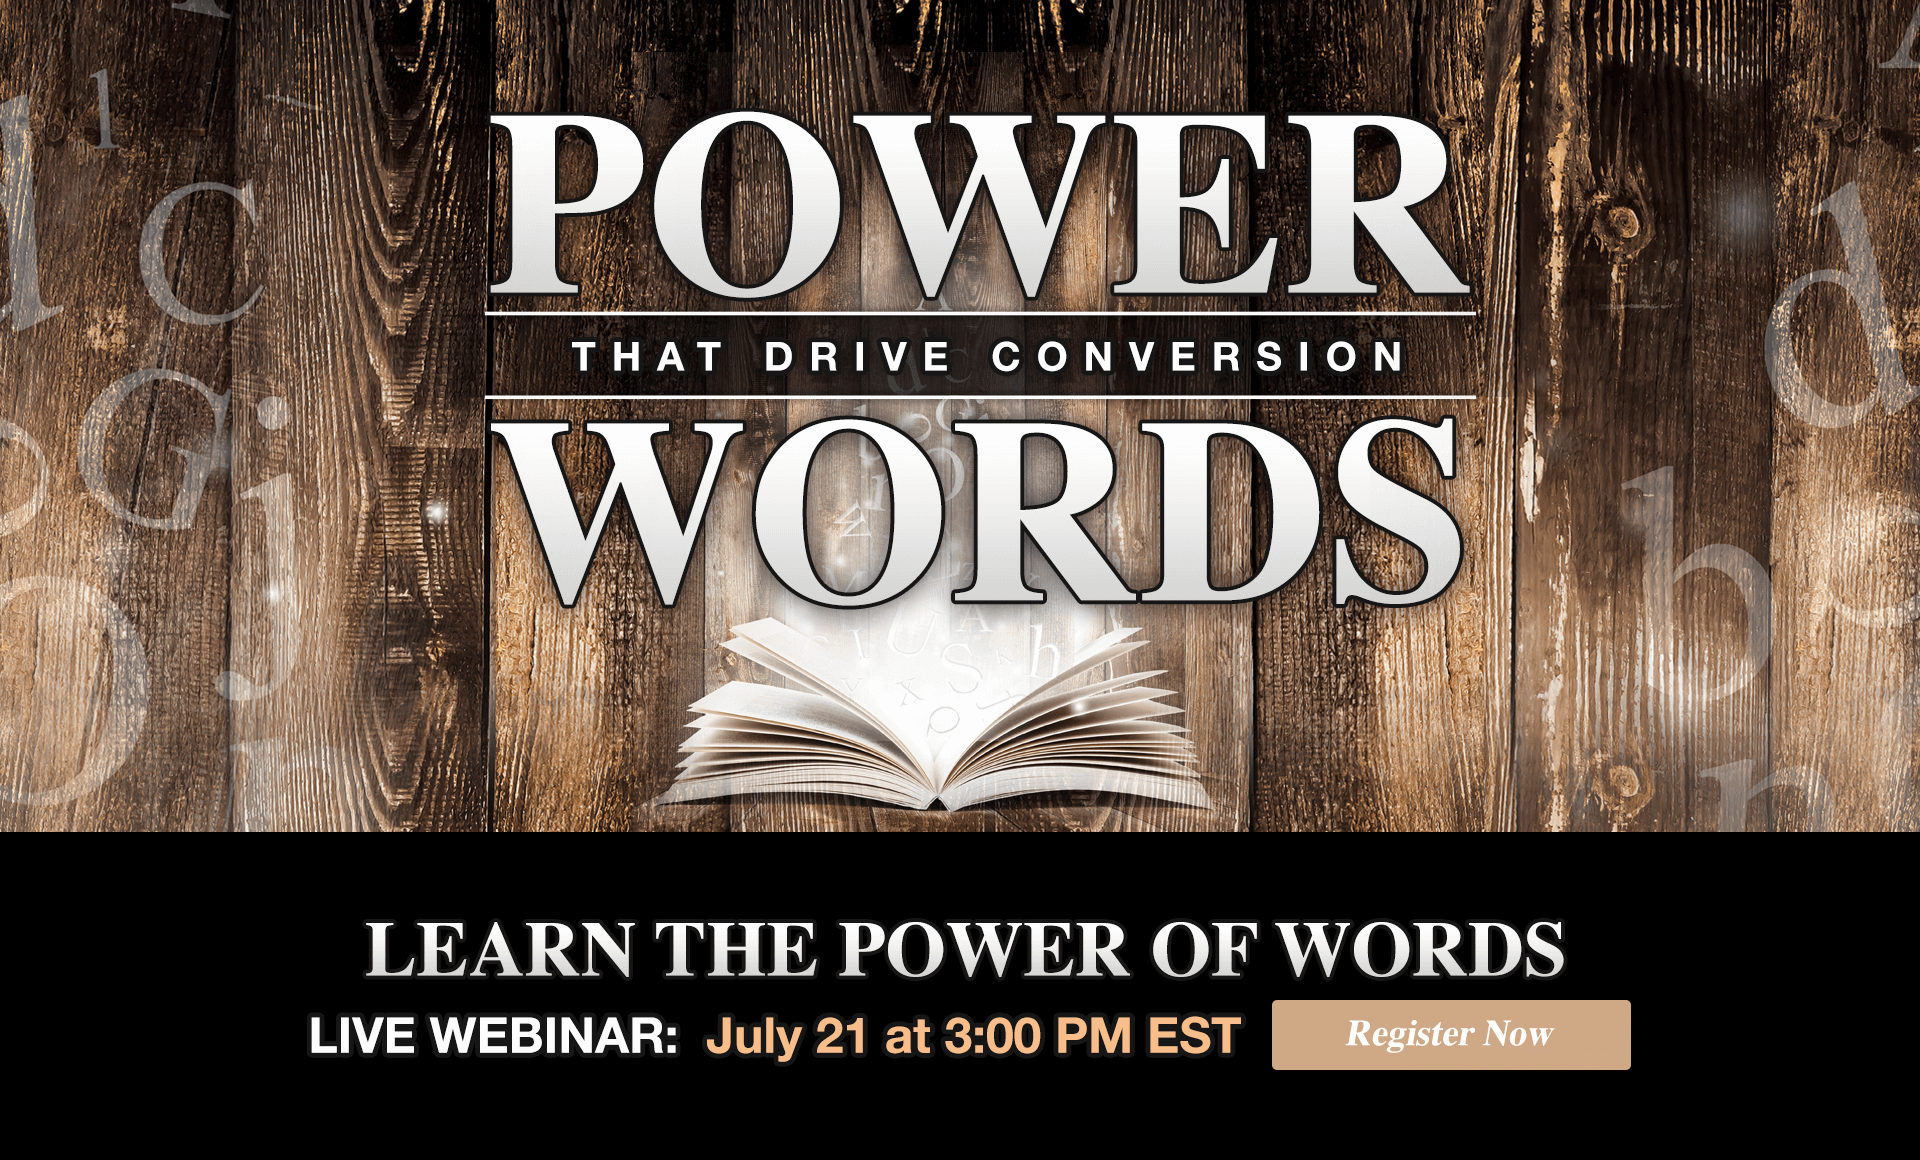 Power Words That Drive Conversion